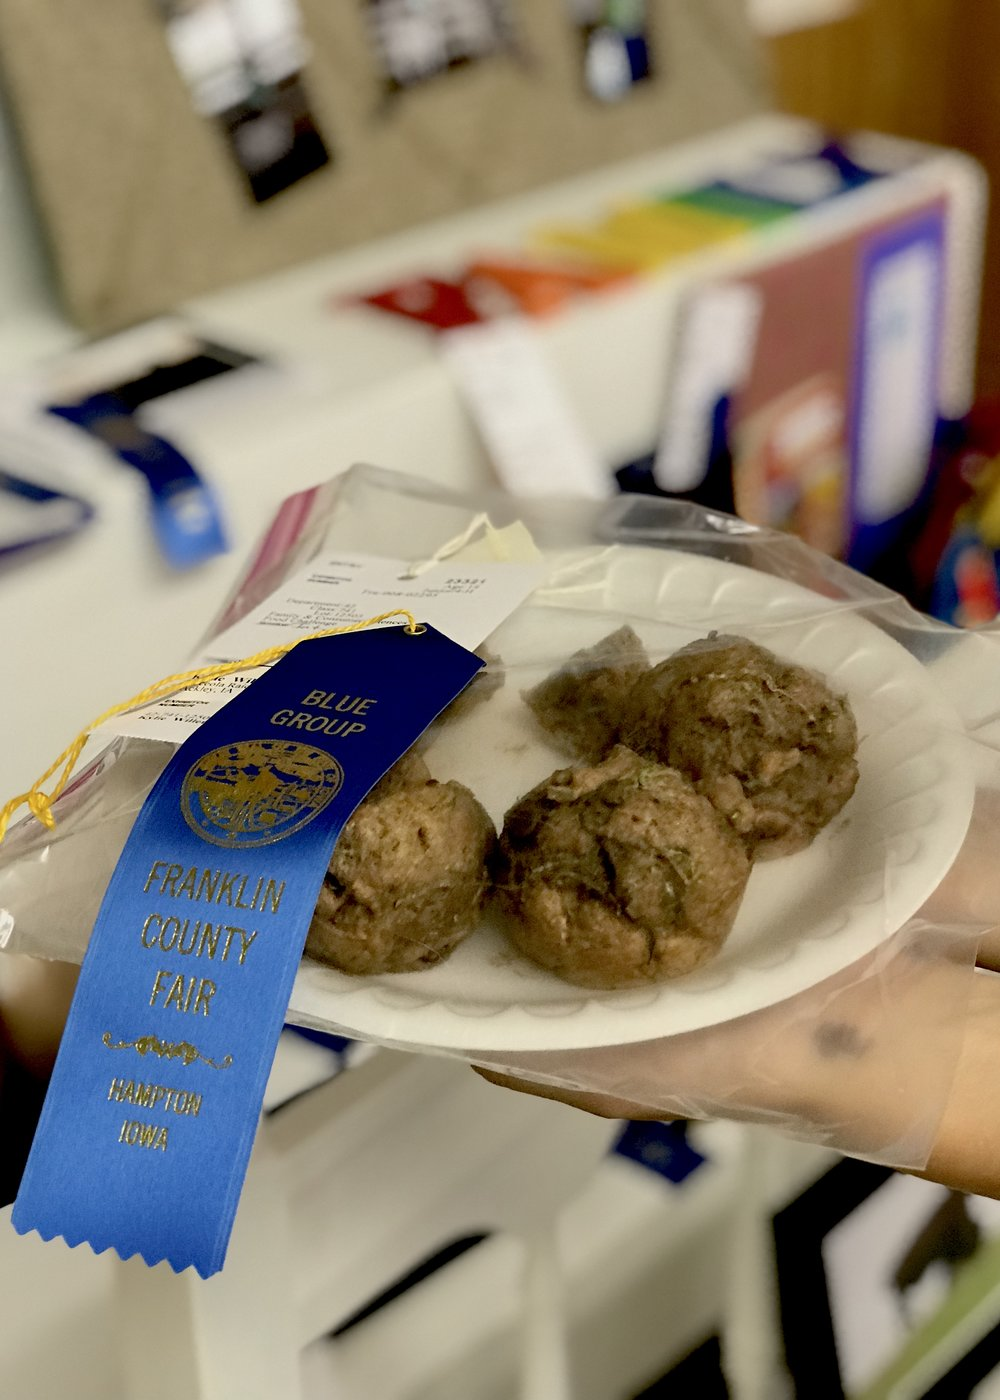 Chocolate Chip Zucchini Muffins at the Franklin County 4-H Recipe Challenge. Photo credit: Anita McVey